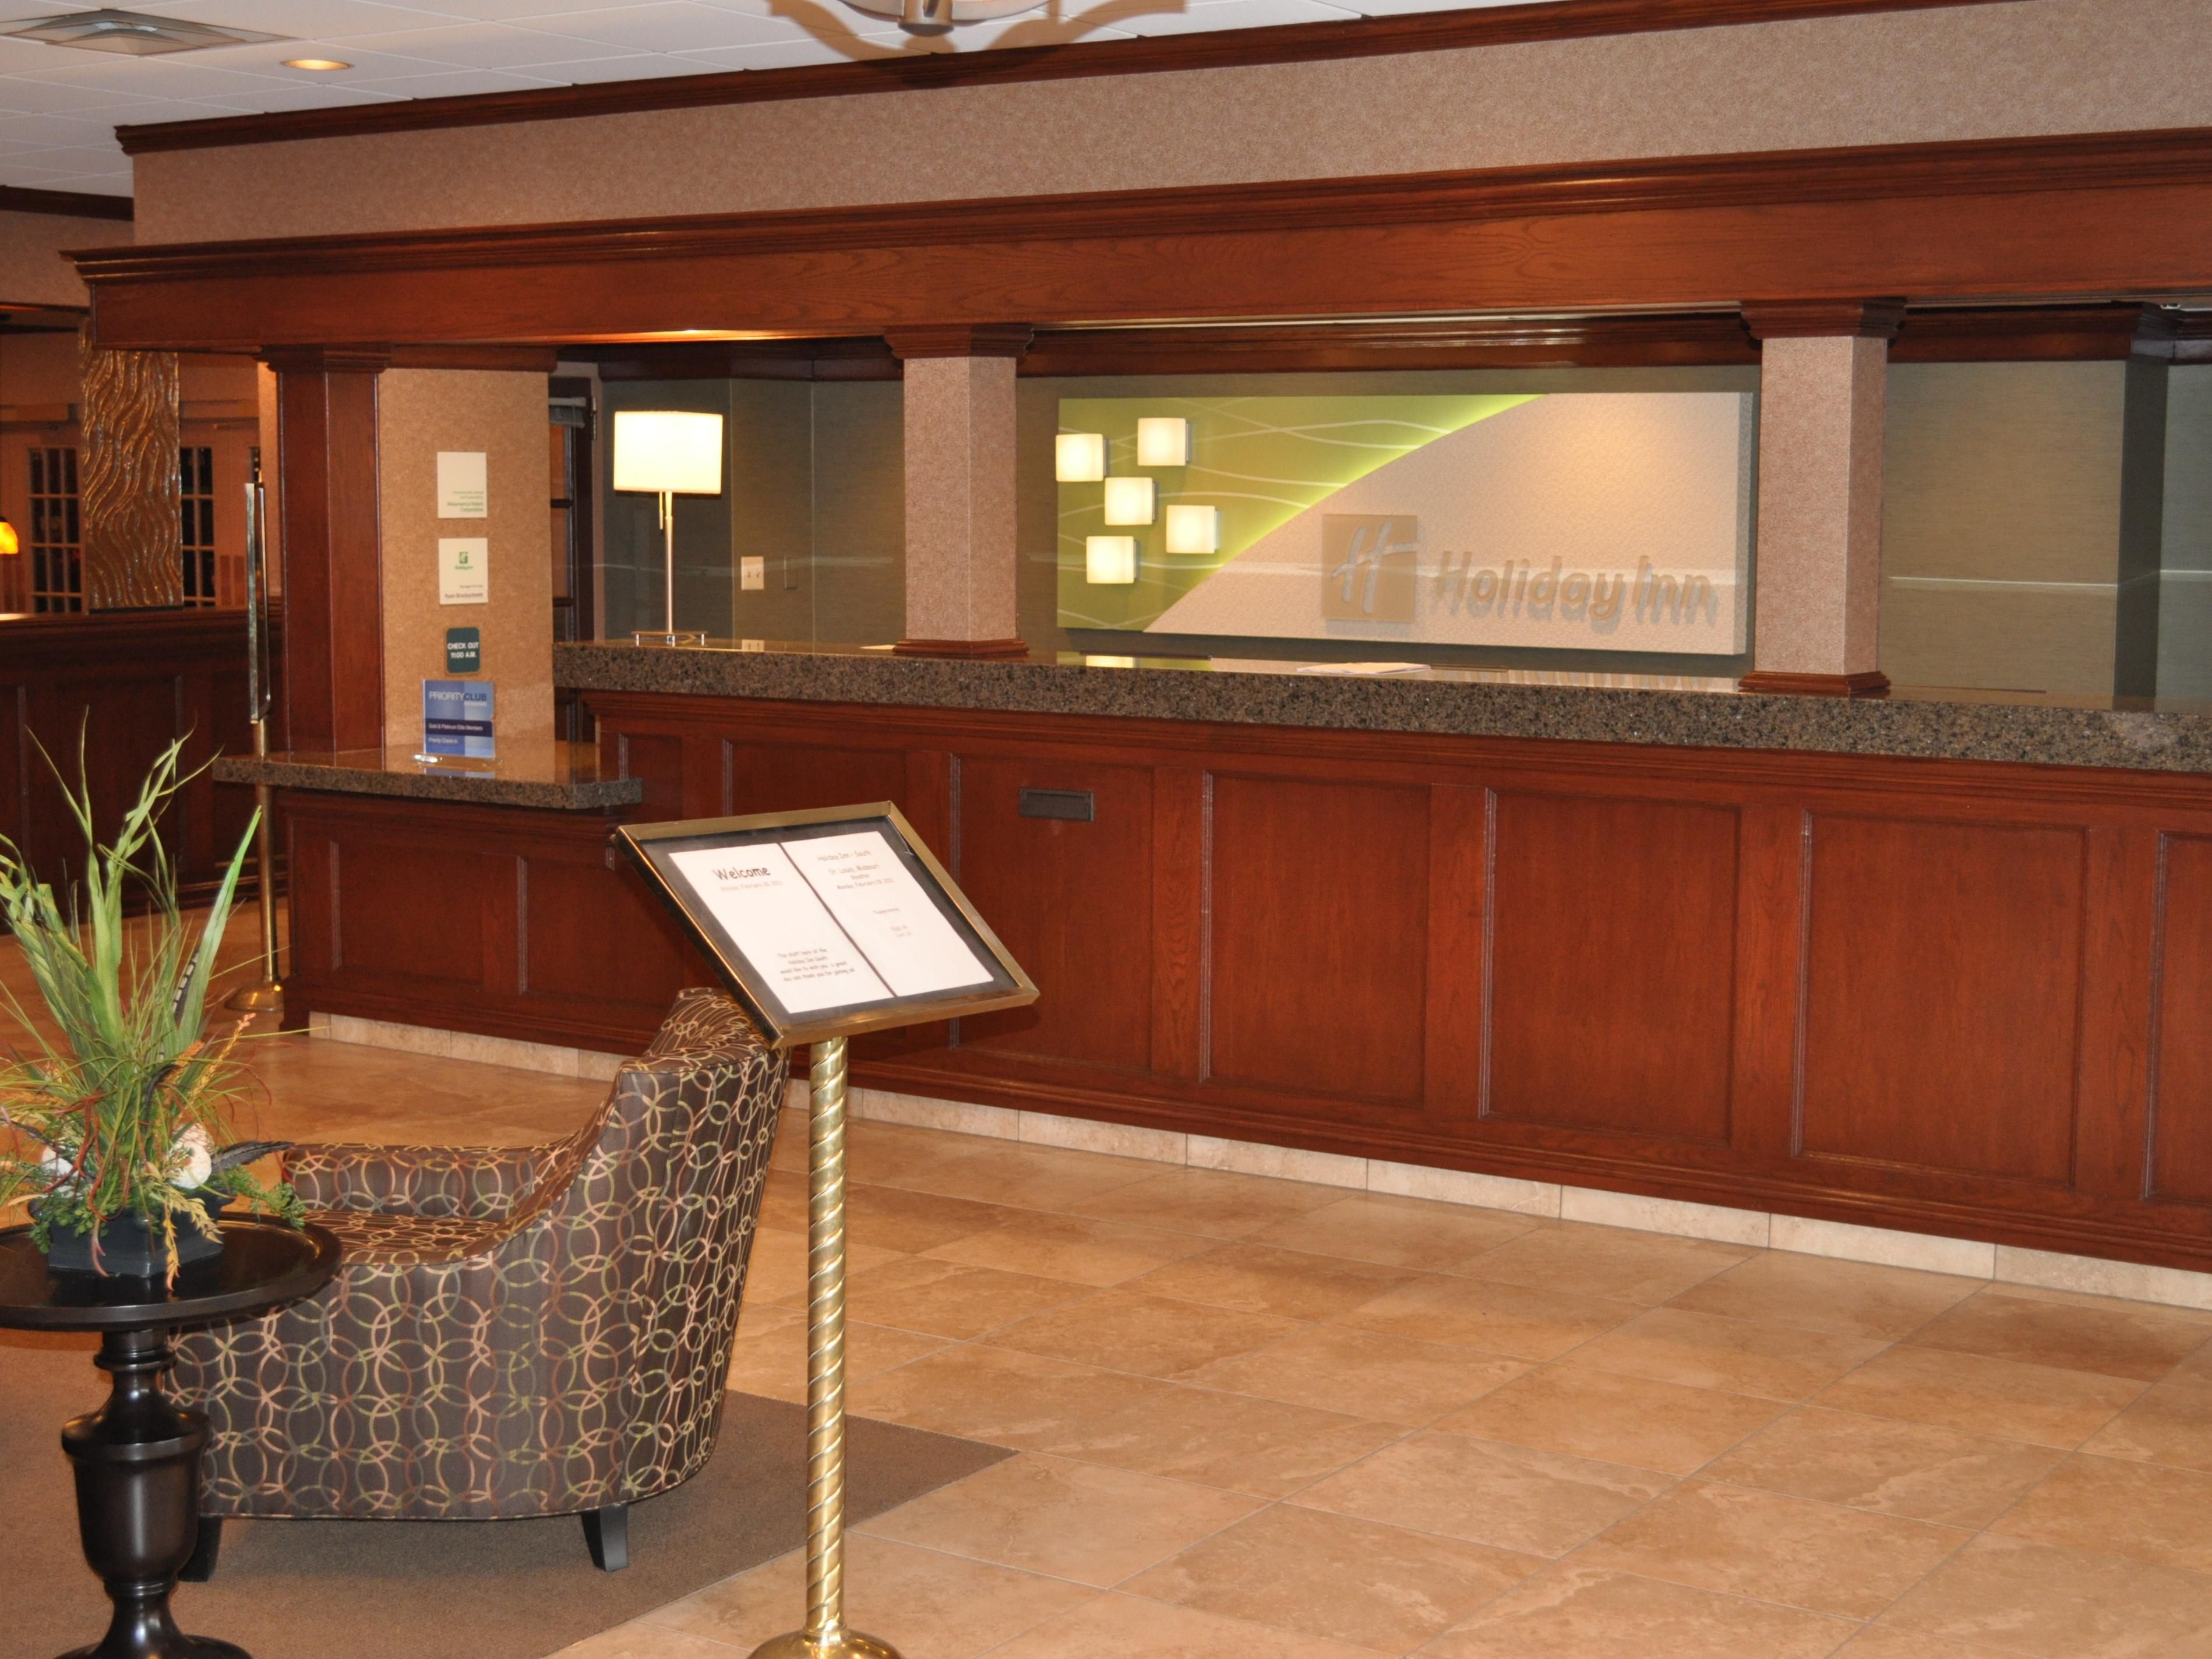 Welcome to our newly renovated lobby & front desk